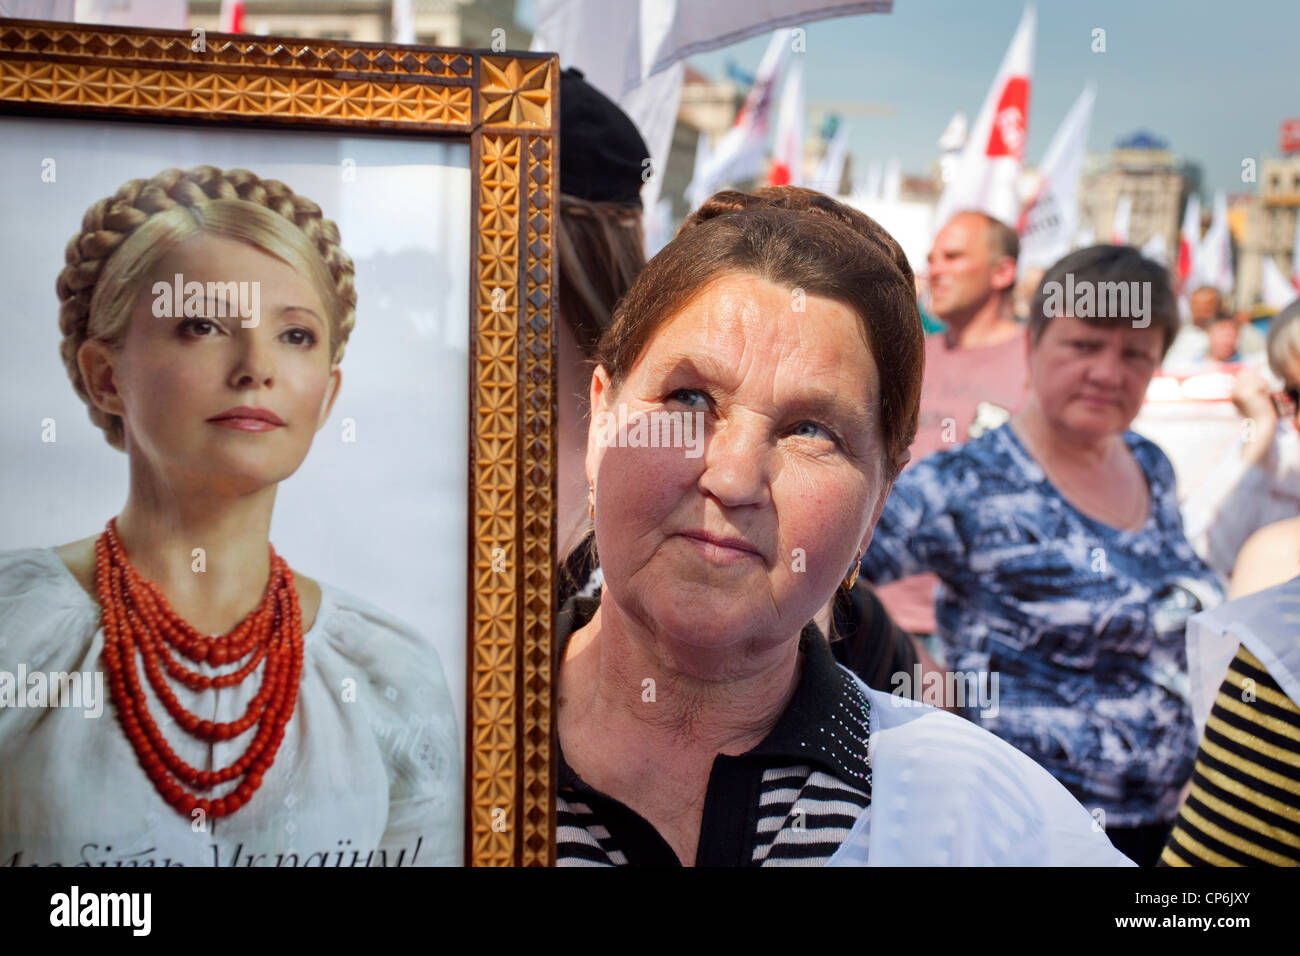 A protest rally for Yulia Tymoshenko in Kiev, Ukraine. - Stock Image